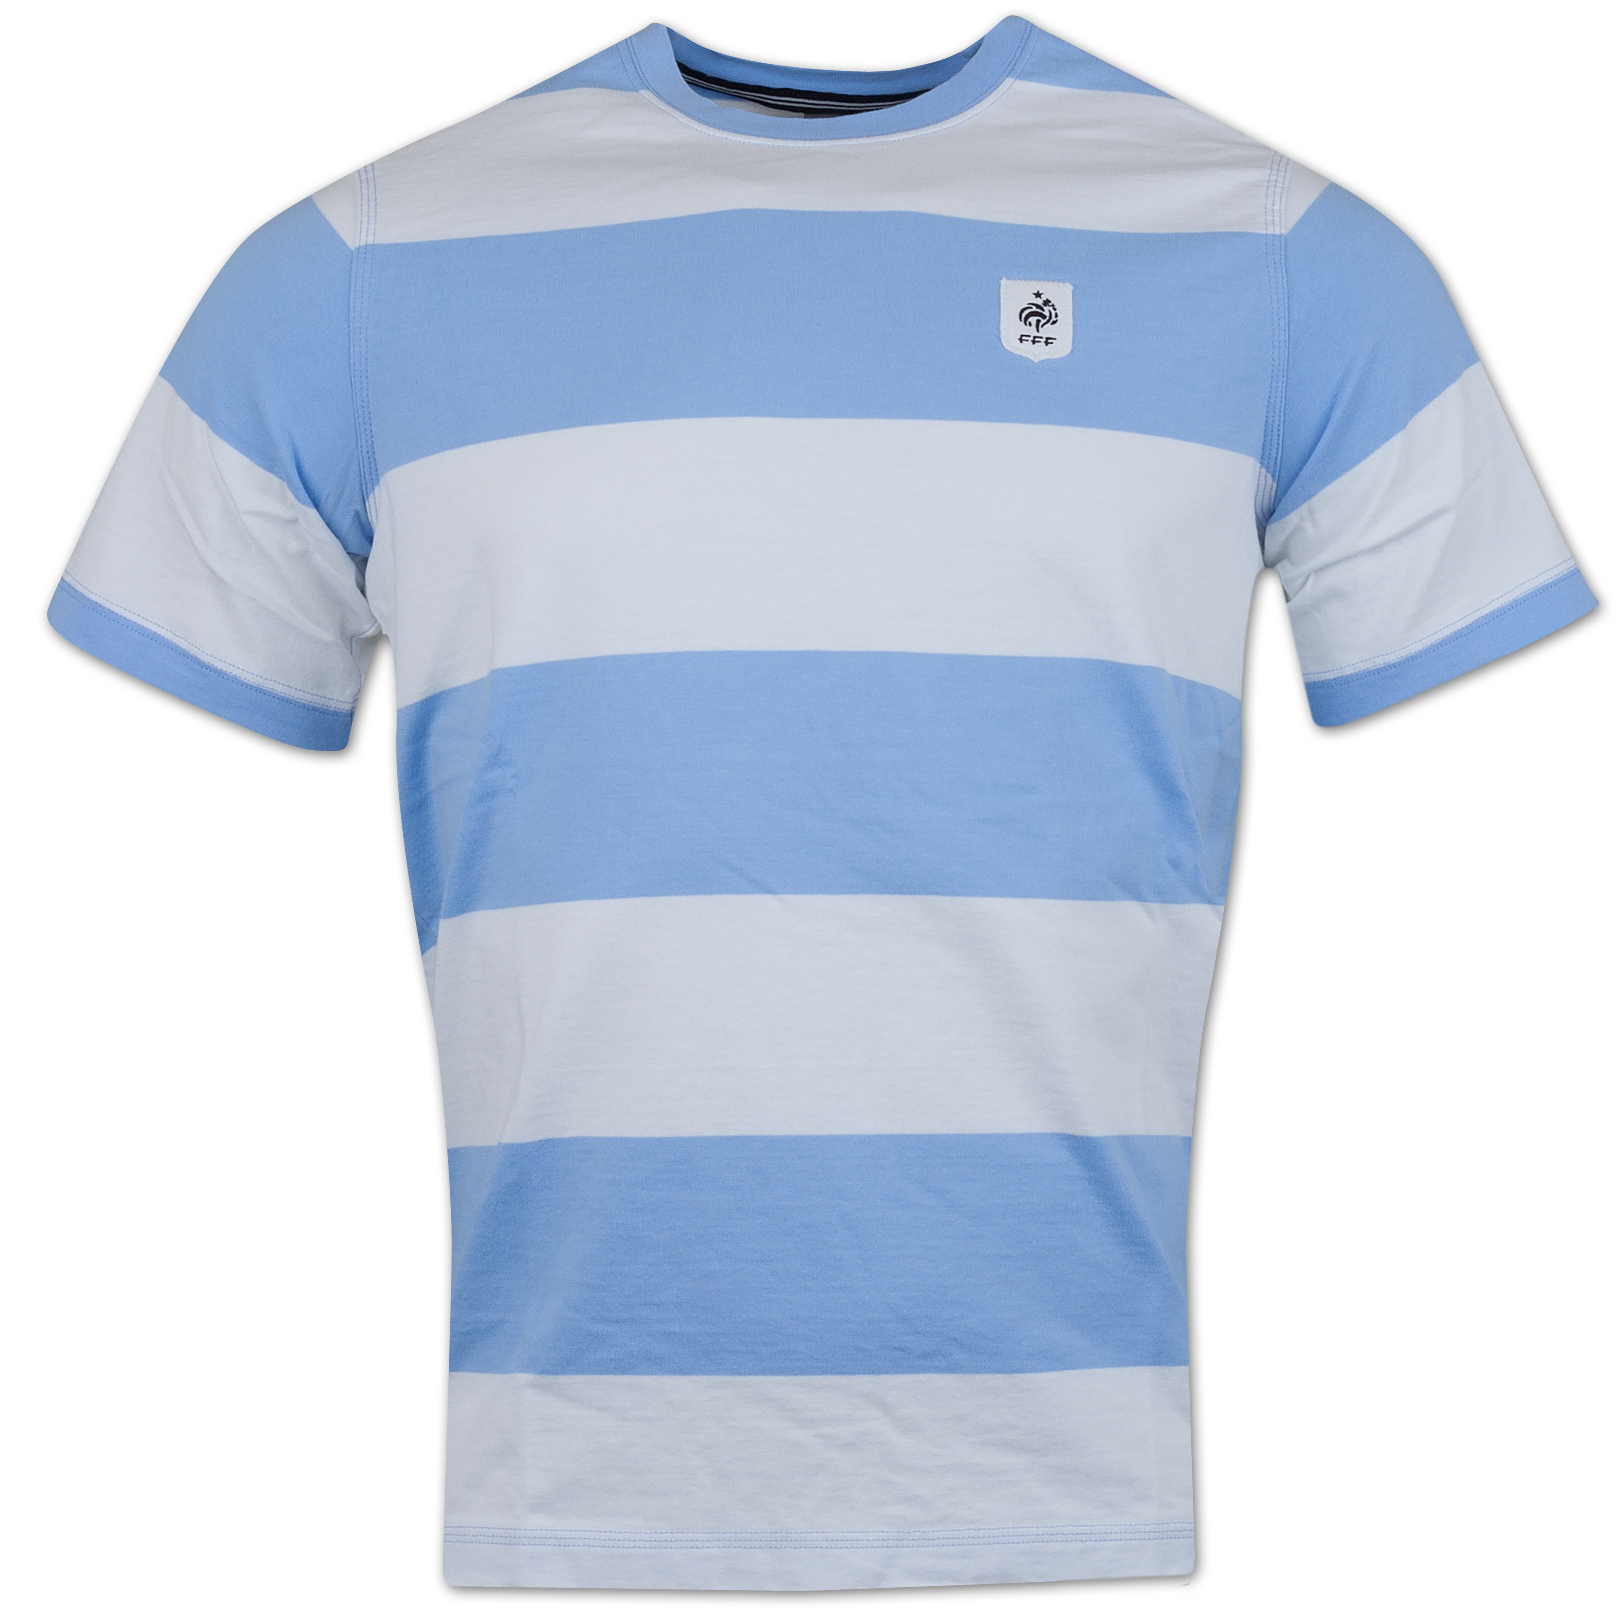 Light Blue And White Striped Shirt | Is Shirt